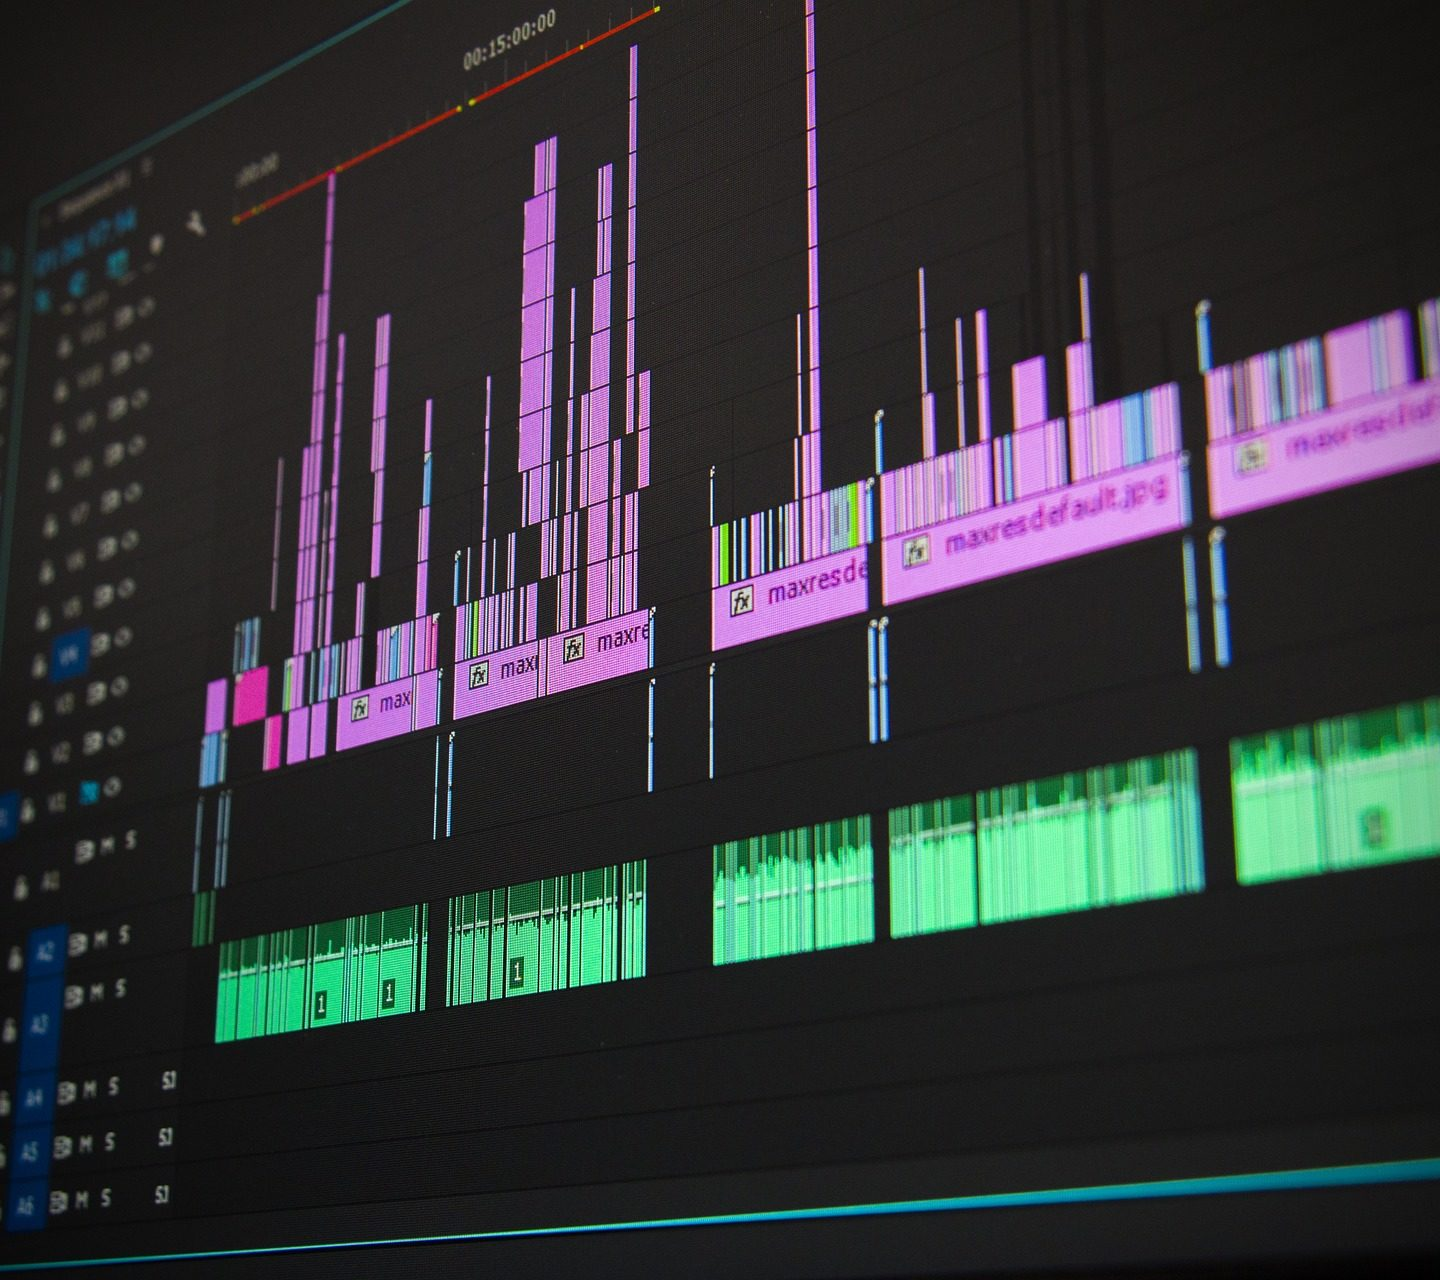 The Most Common Video Editing Mistakes And How To Fix Them